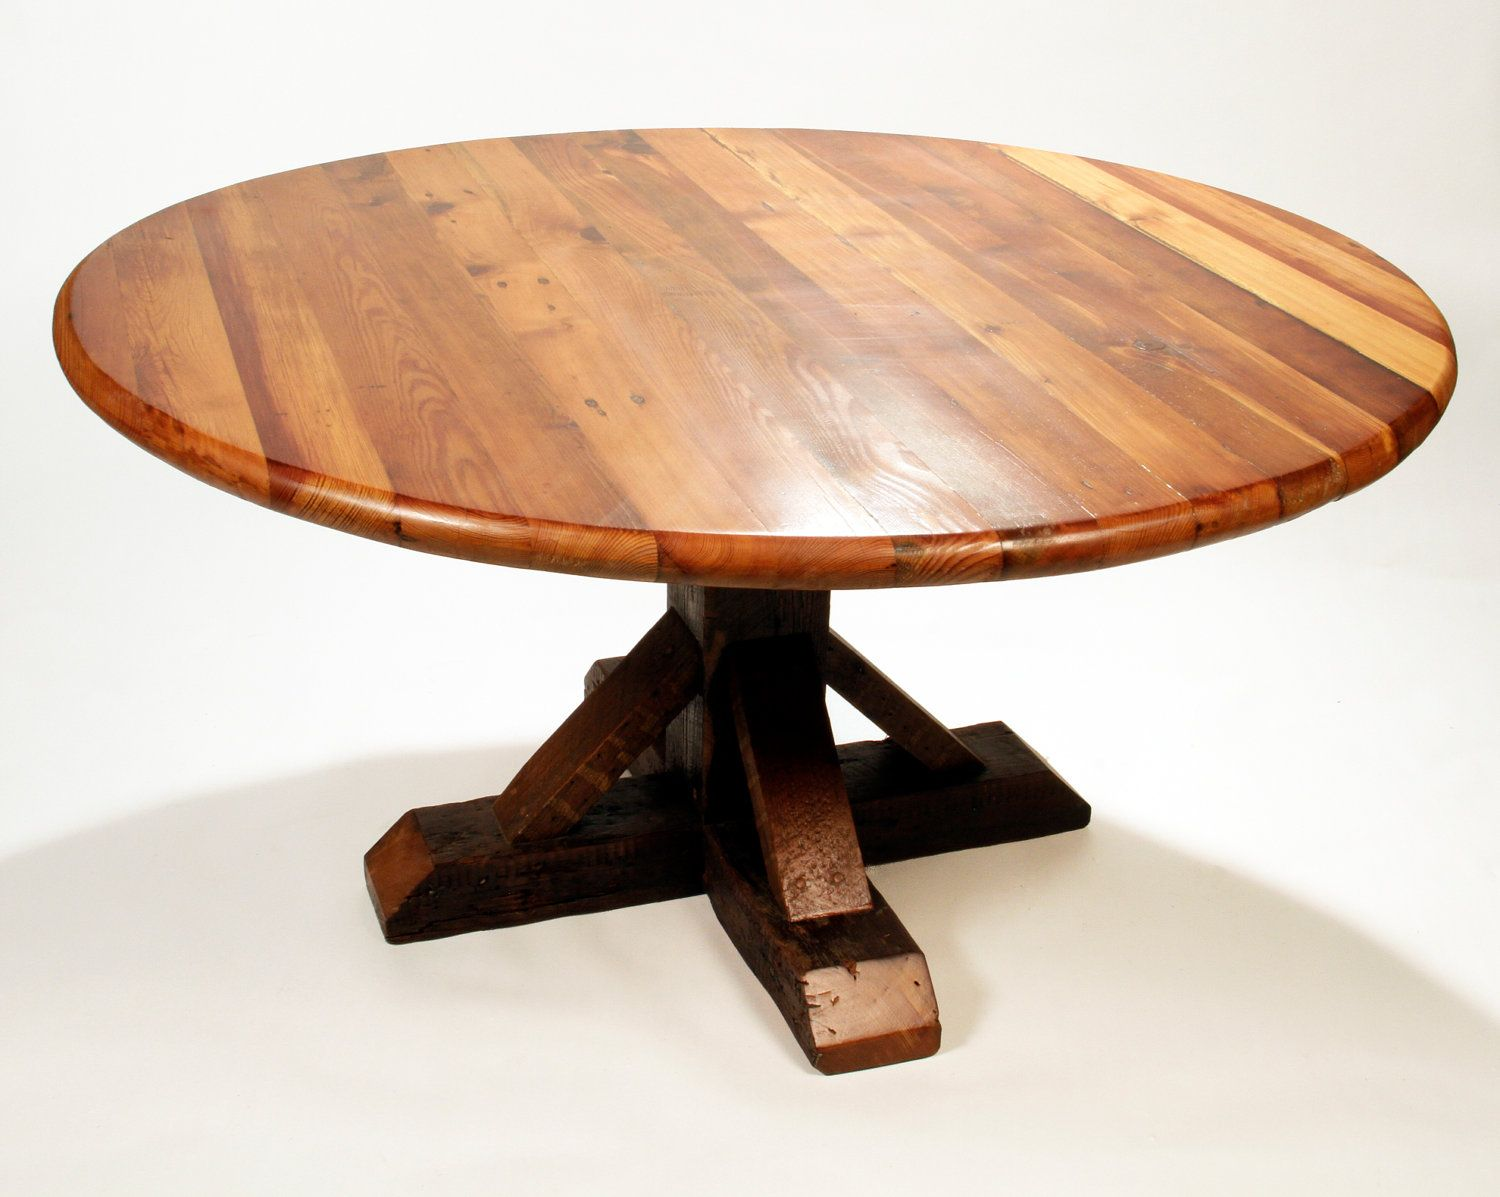 Reclaimed Wood Dining Table Round Antique Heart Pine Reclaimed Sustainable Eco Friendly Modern Rustic Round Wood Dining Table Dining Table Wood Dining Table